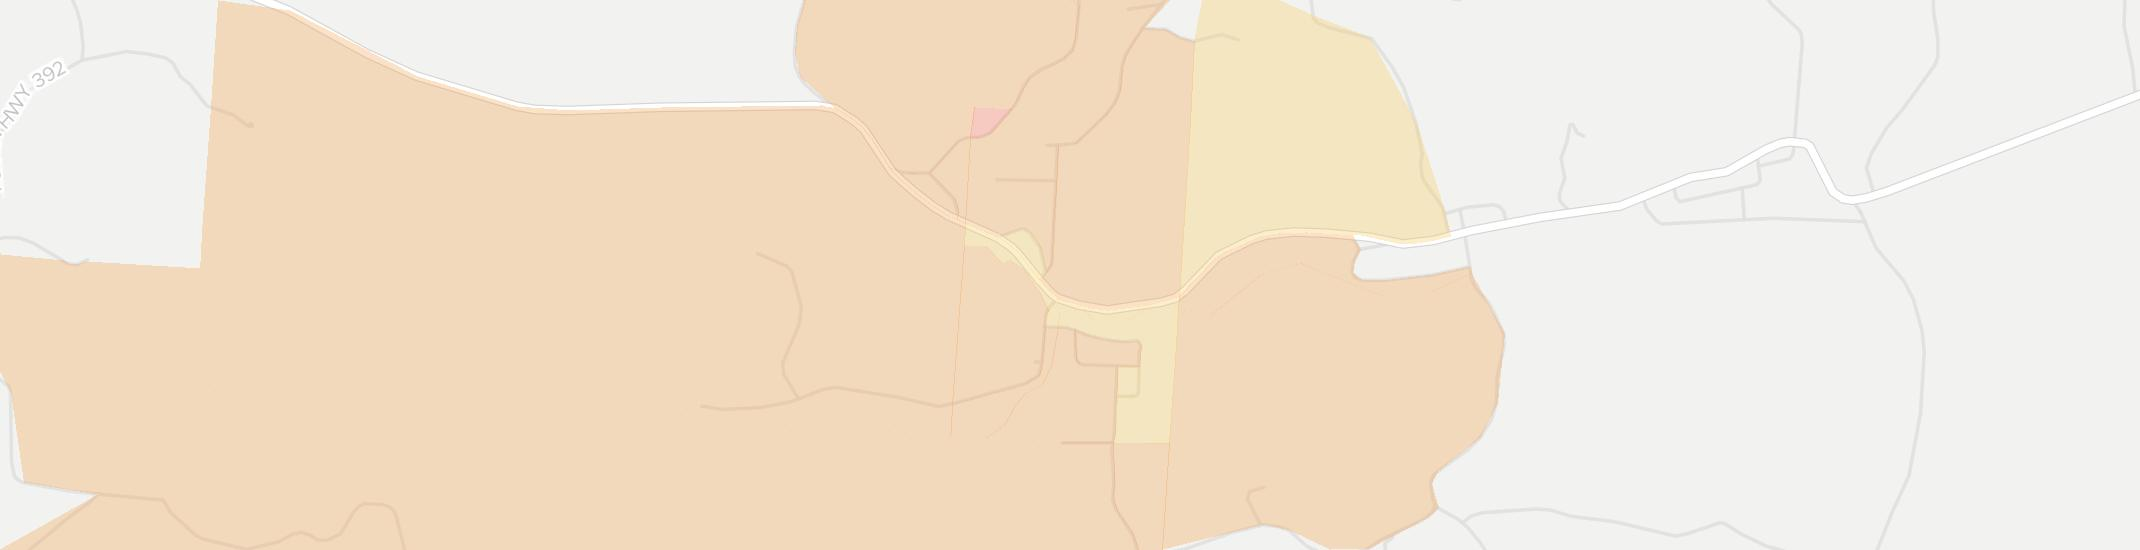 Hemlock Internet Competition Map. Click for interactive map.